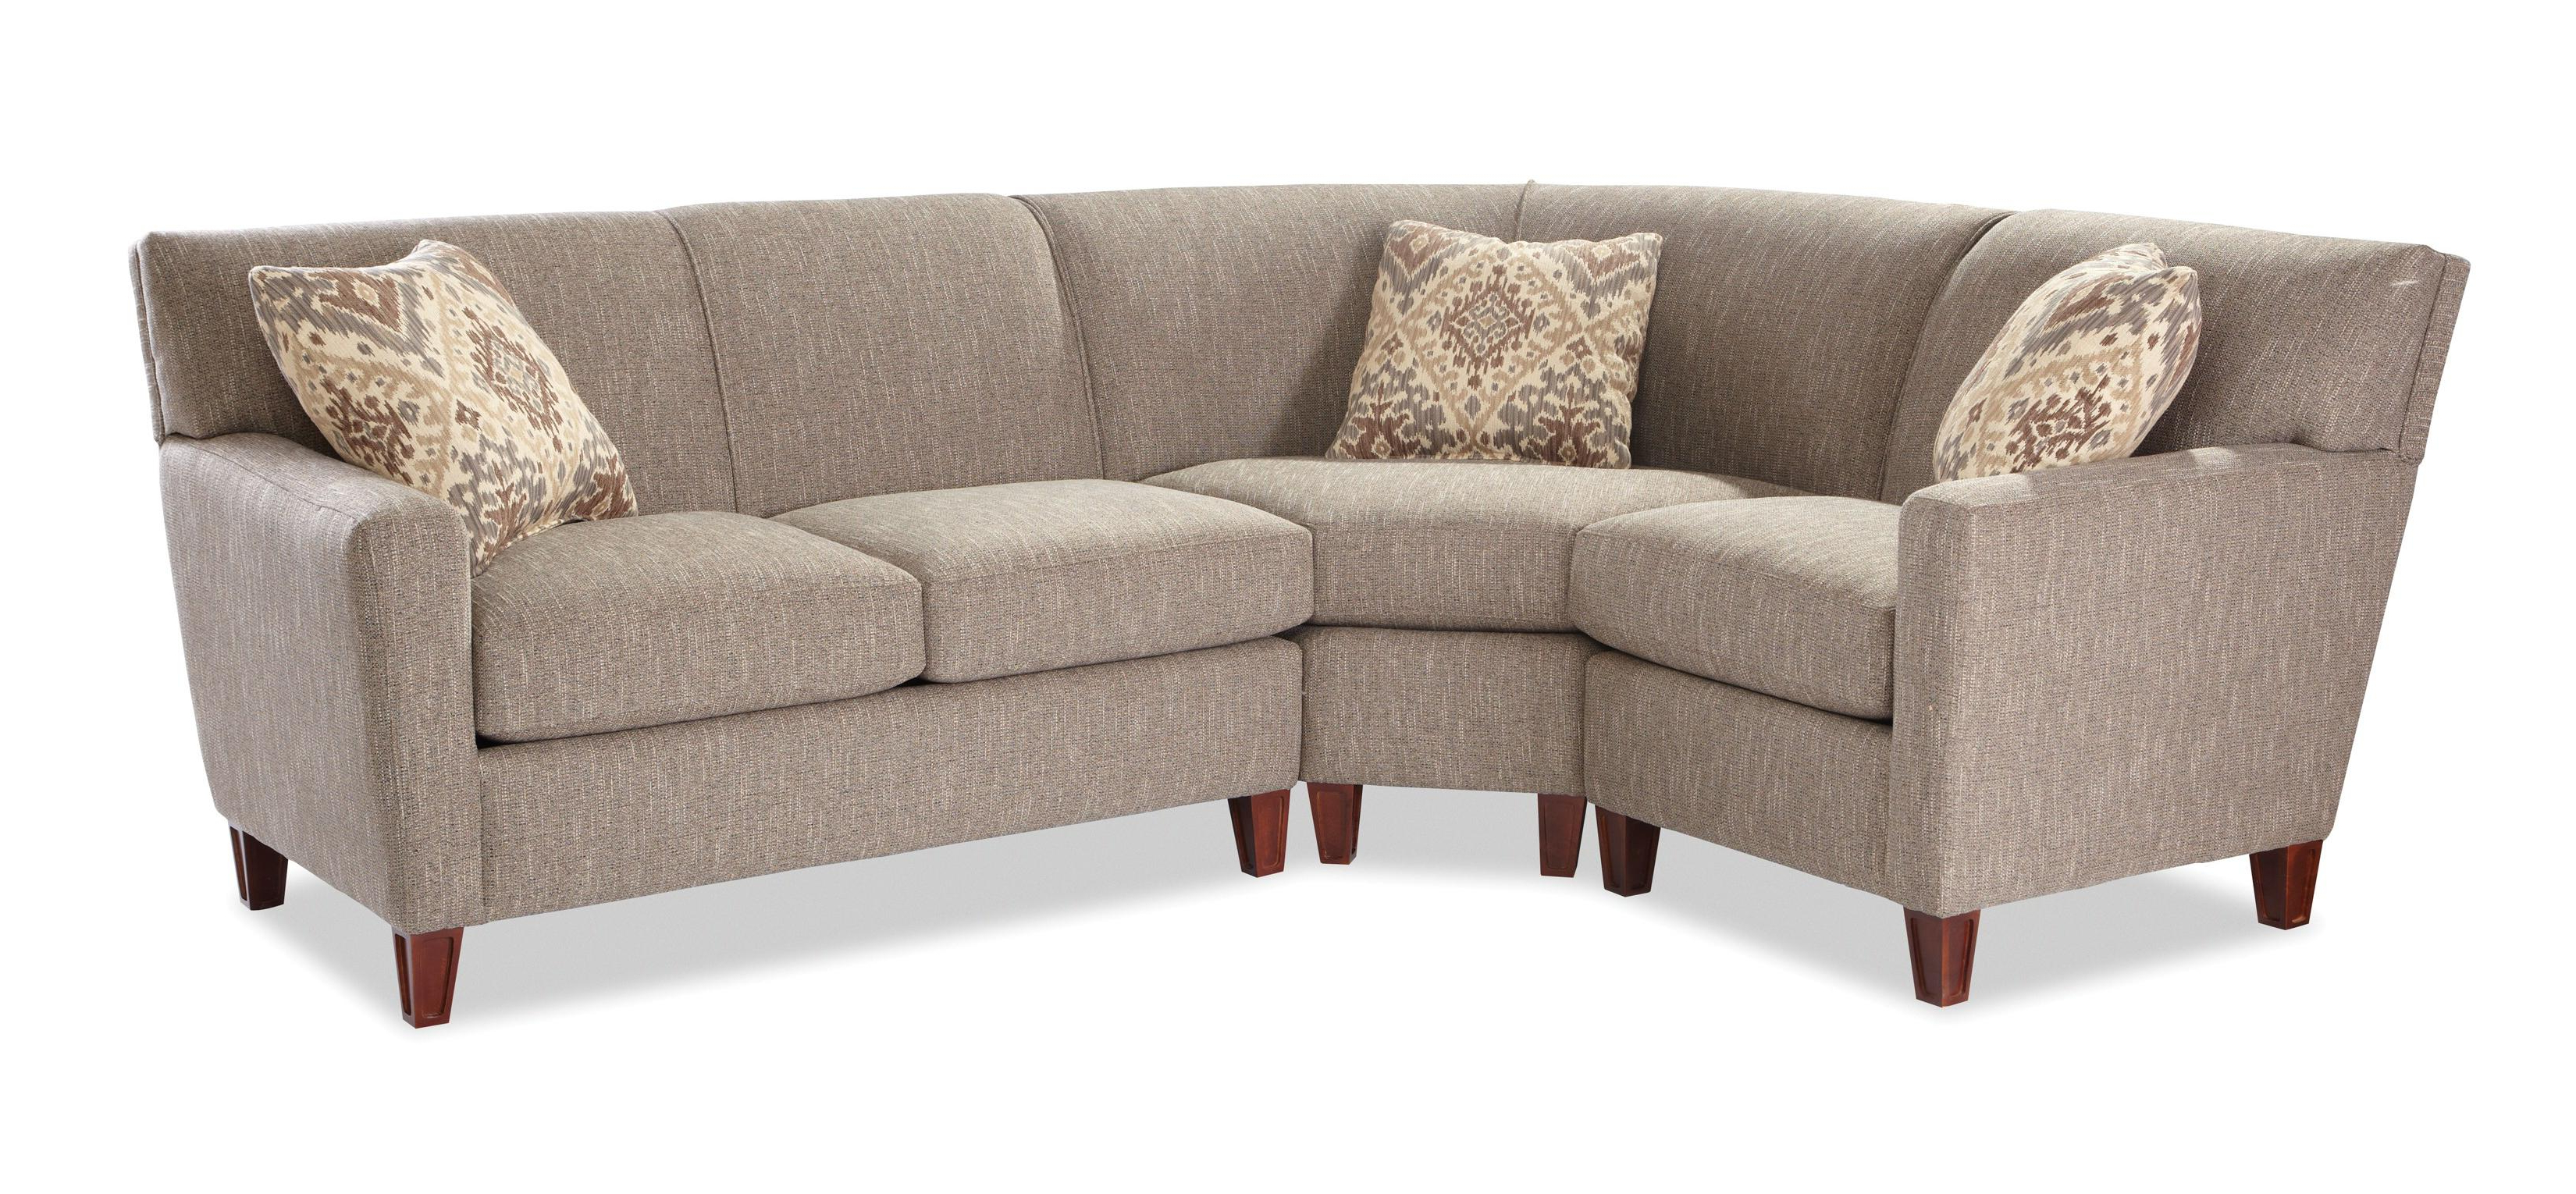 Turdur 2 Piece Sectionals With Raf Loveseat With Regard To Most Up To Date Laf Sofa Raf Loveseat (View 15 of 20)